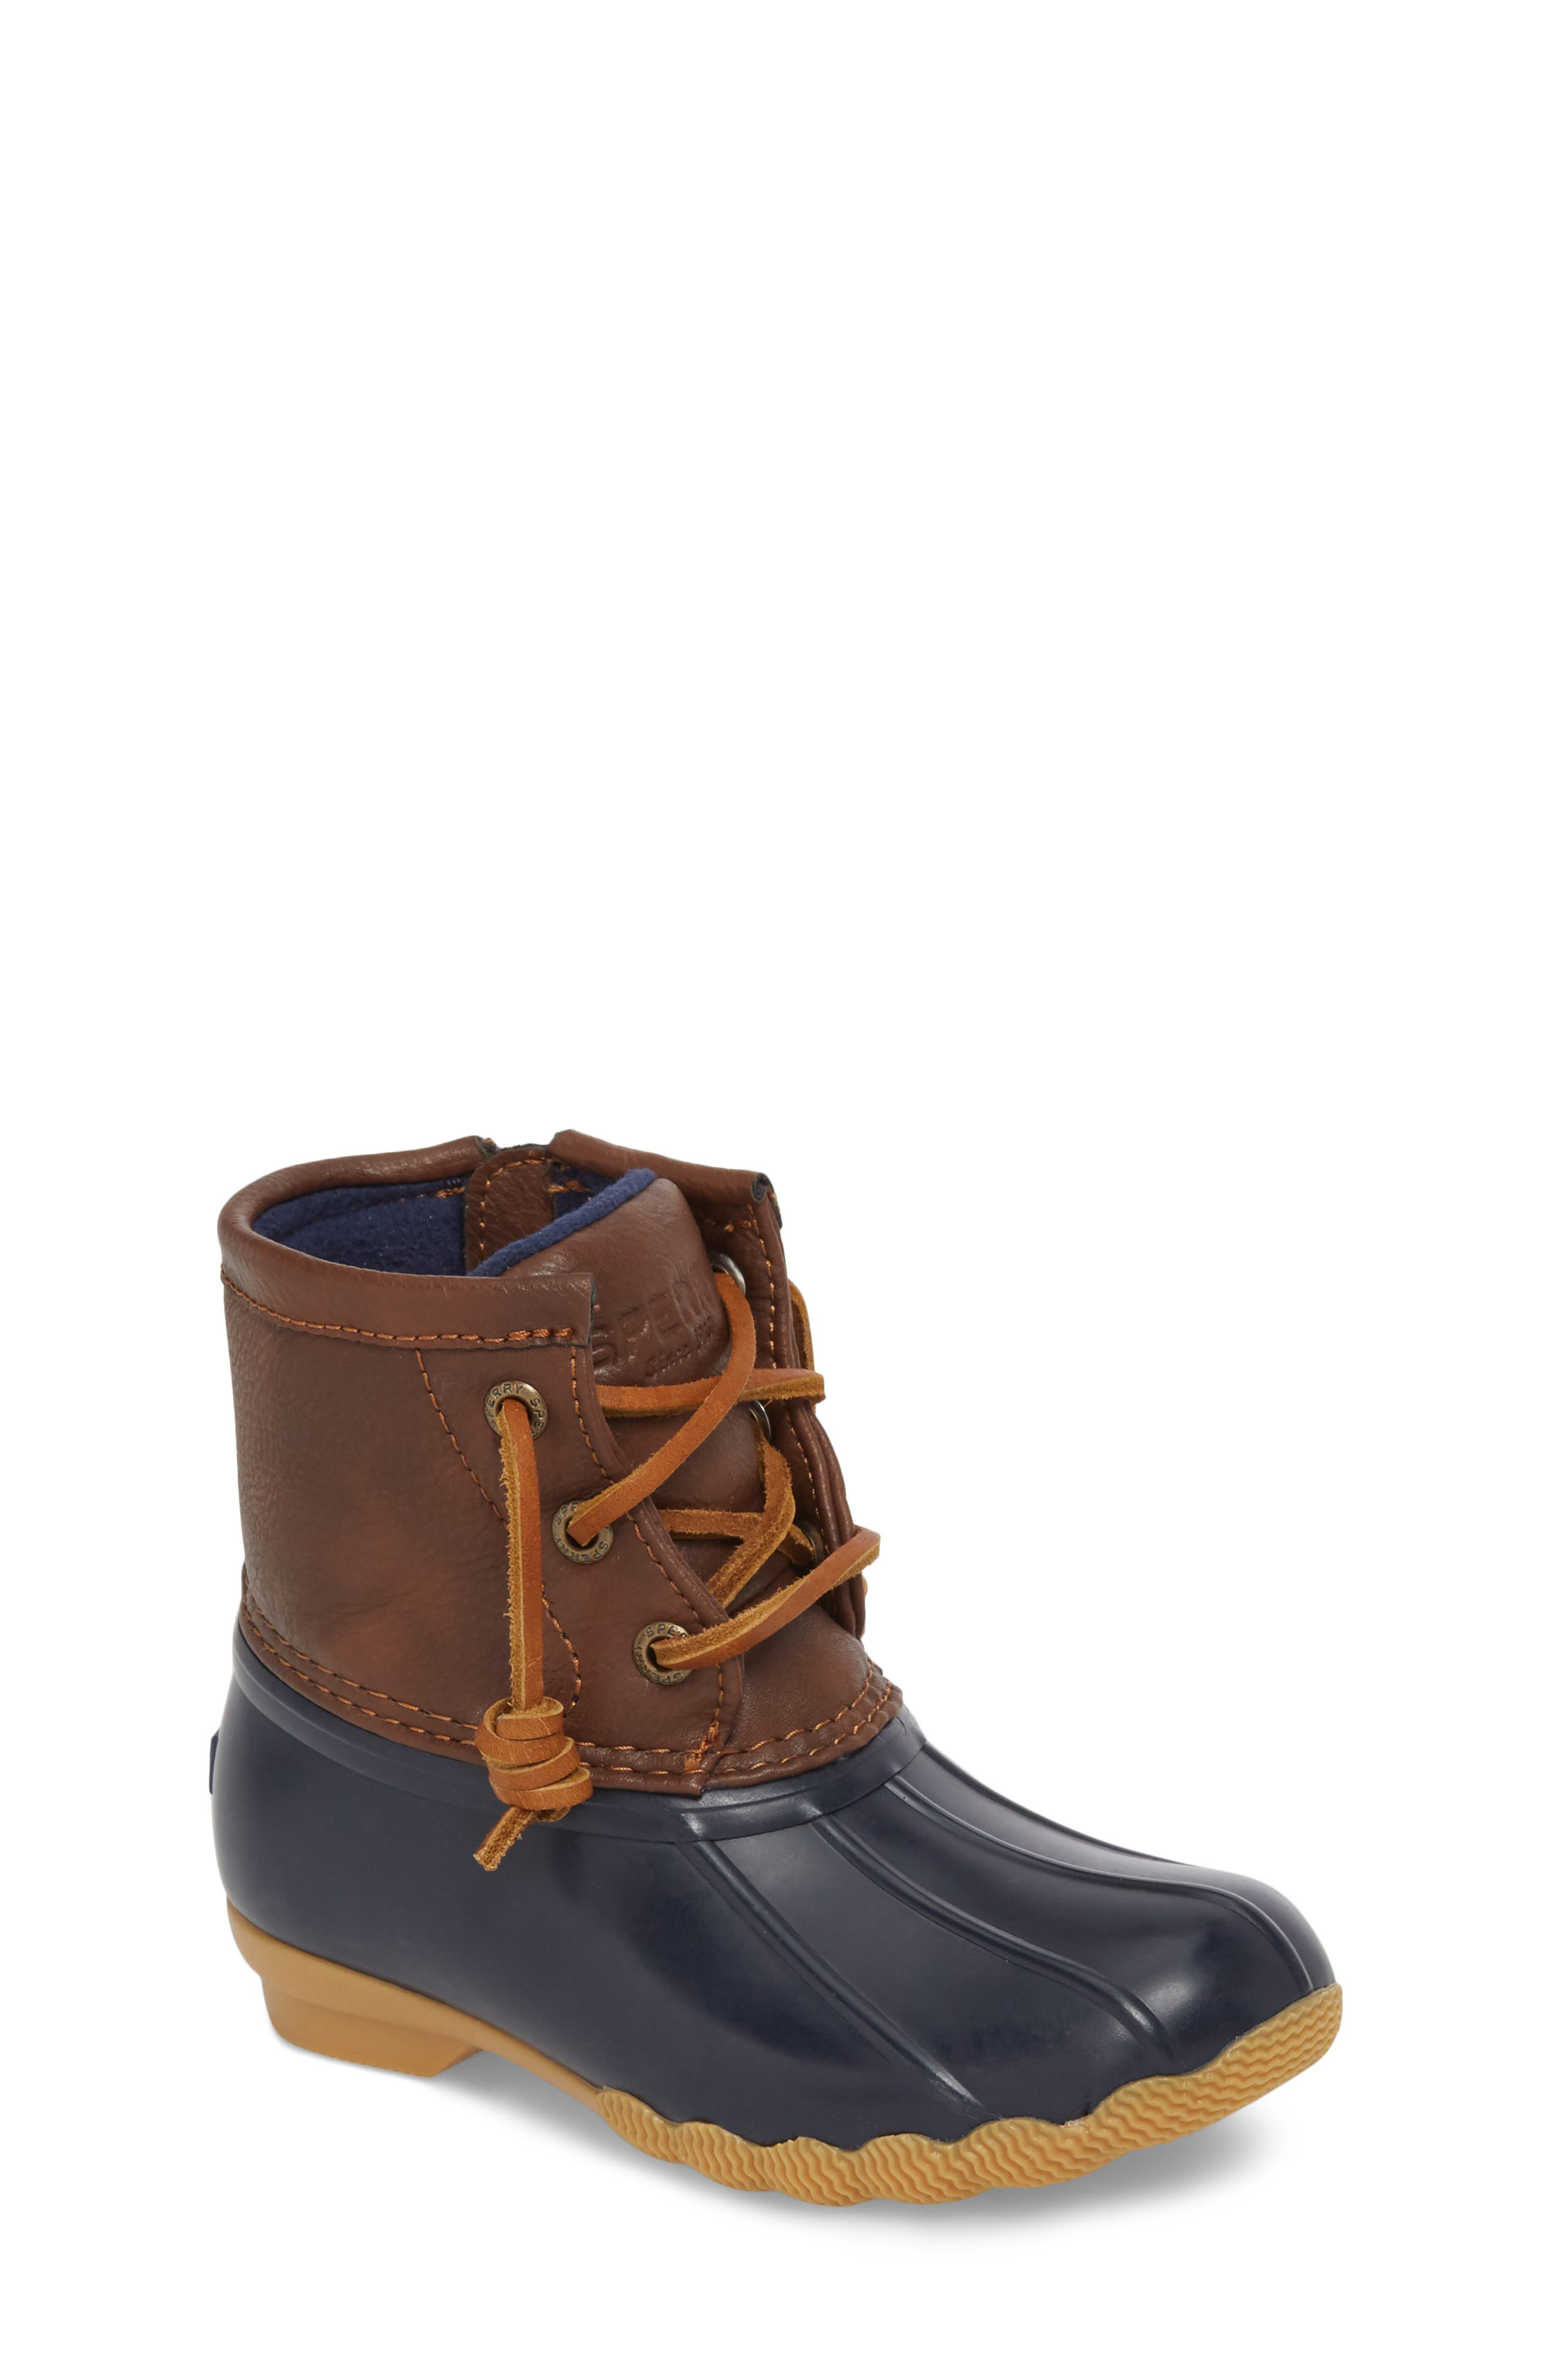 SPERRY KIDS,                             Saltwater Duck Boot,                             Main thumbnail 1, color,                             NAVY/ NAVY